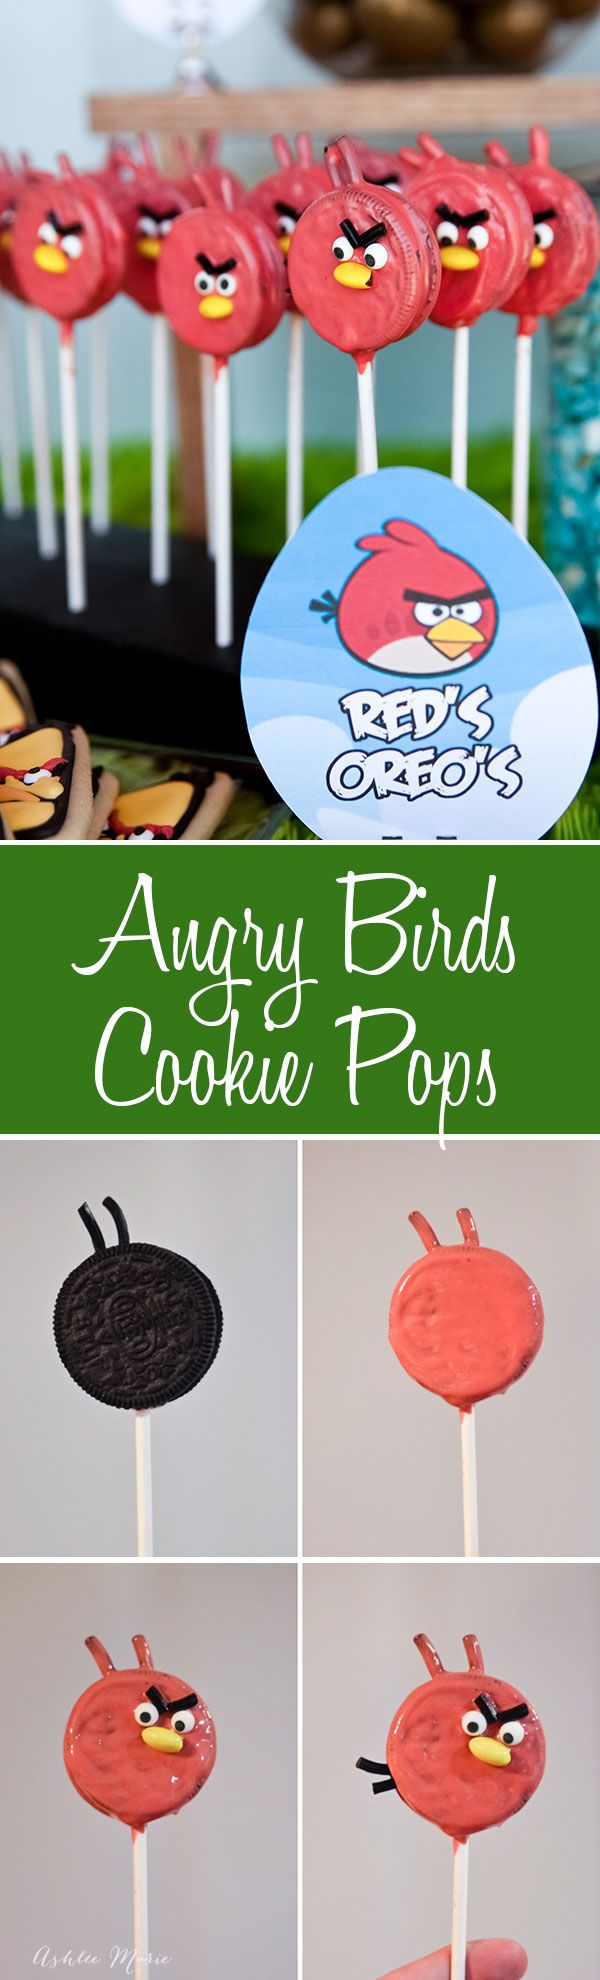 an easy tutorial for making your own oreo pop angry bird, this one is for Red but you can use the same techniques to make any of the birds